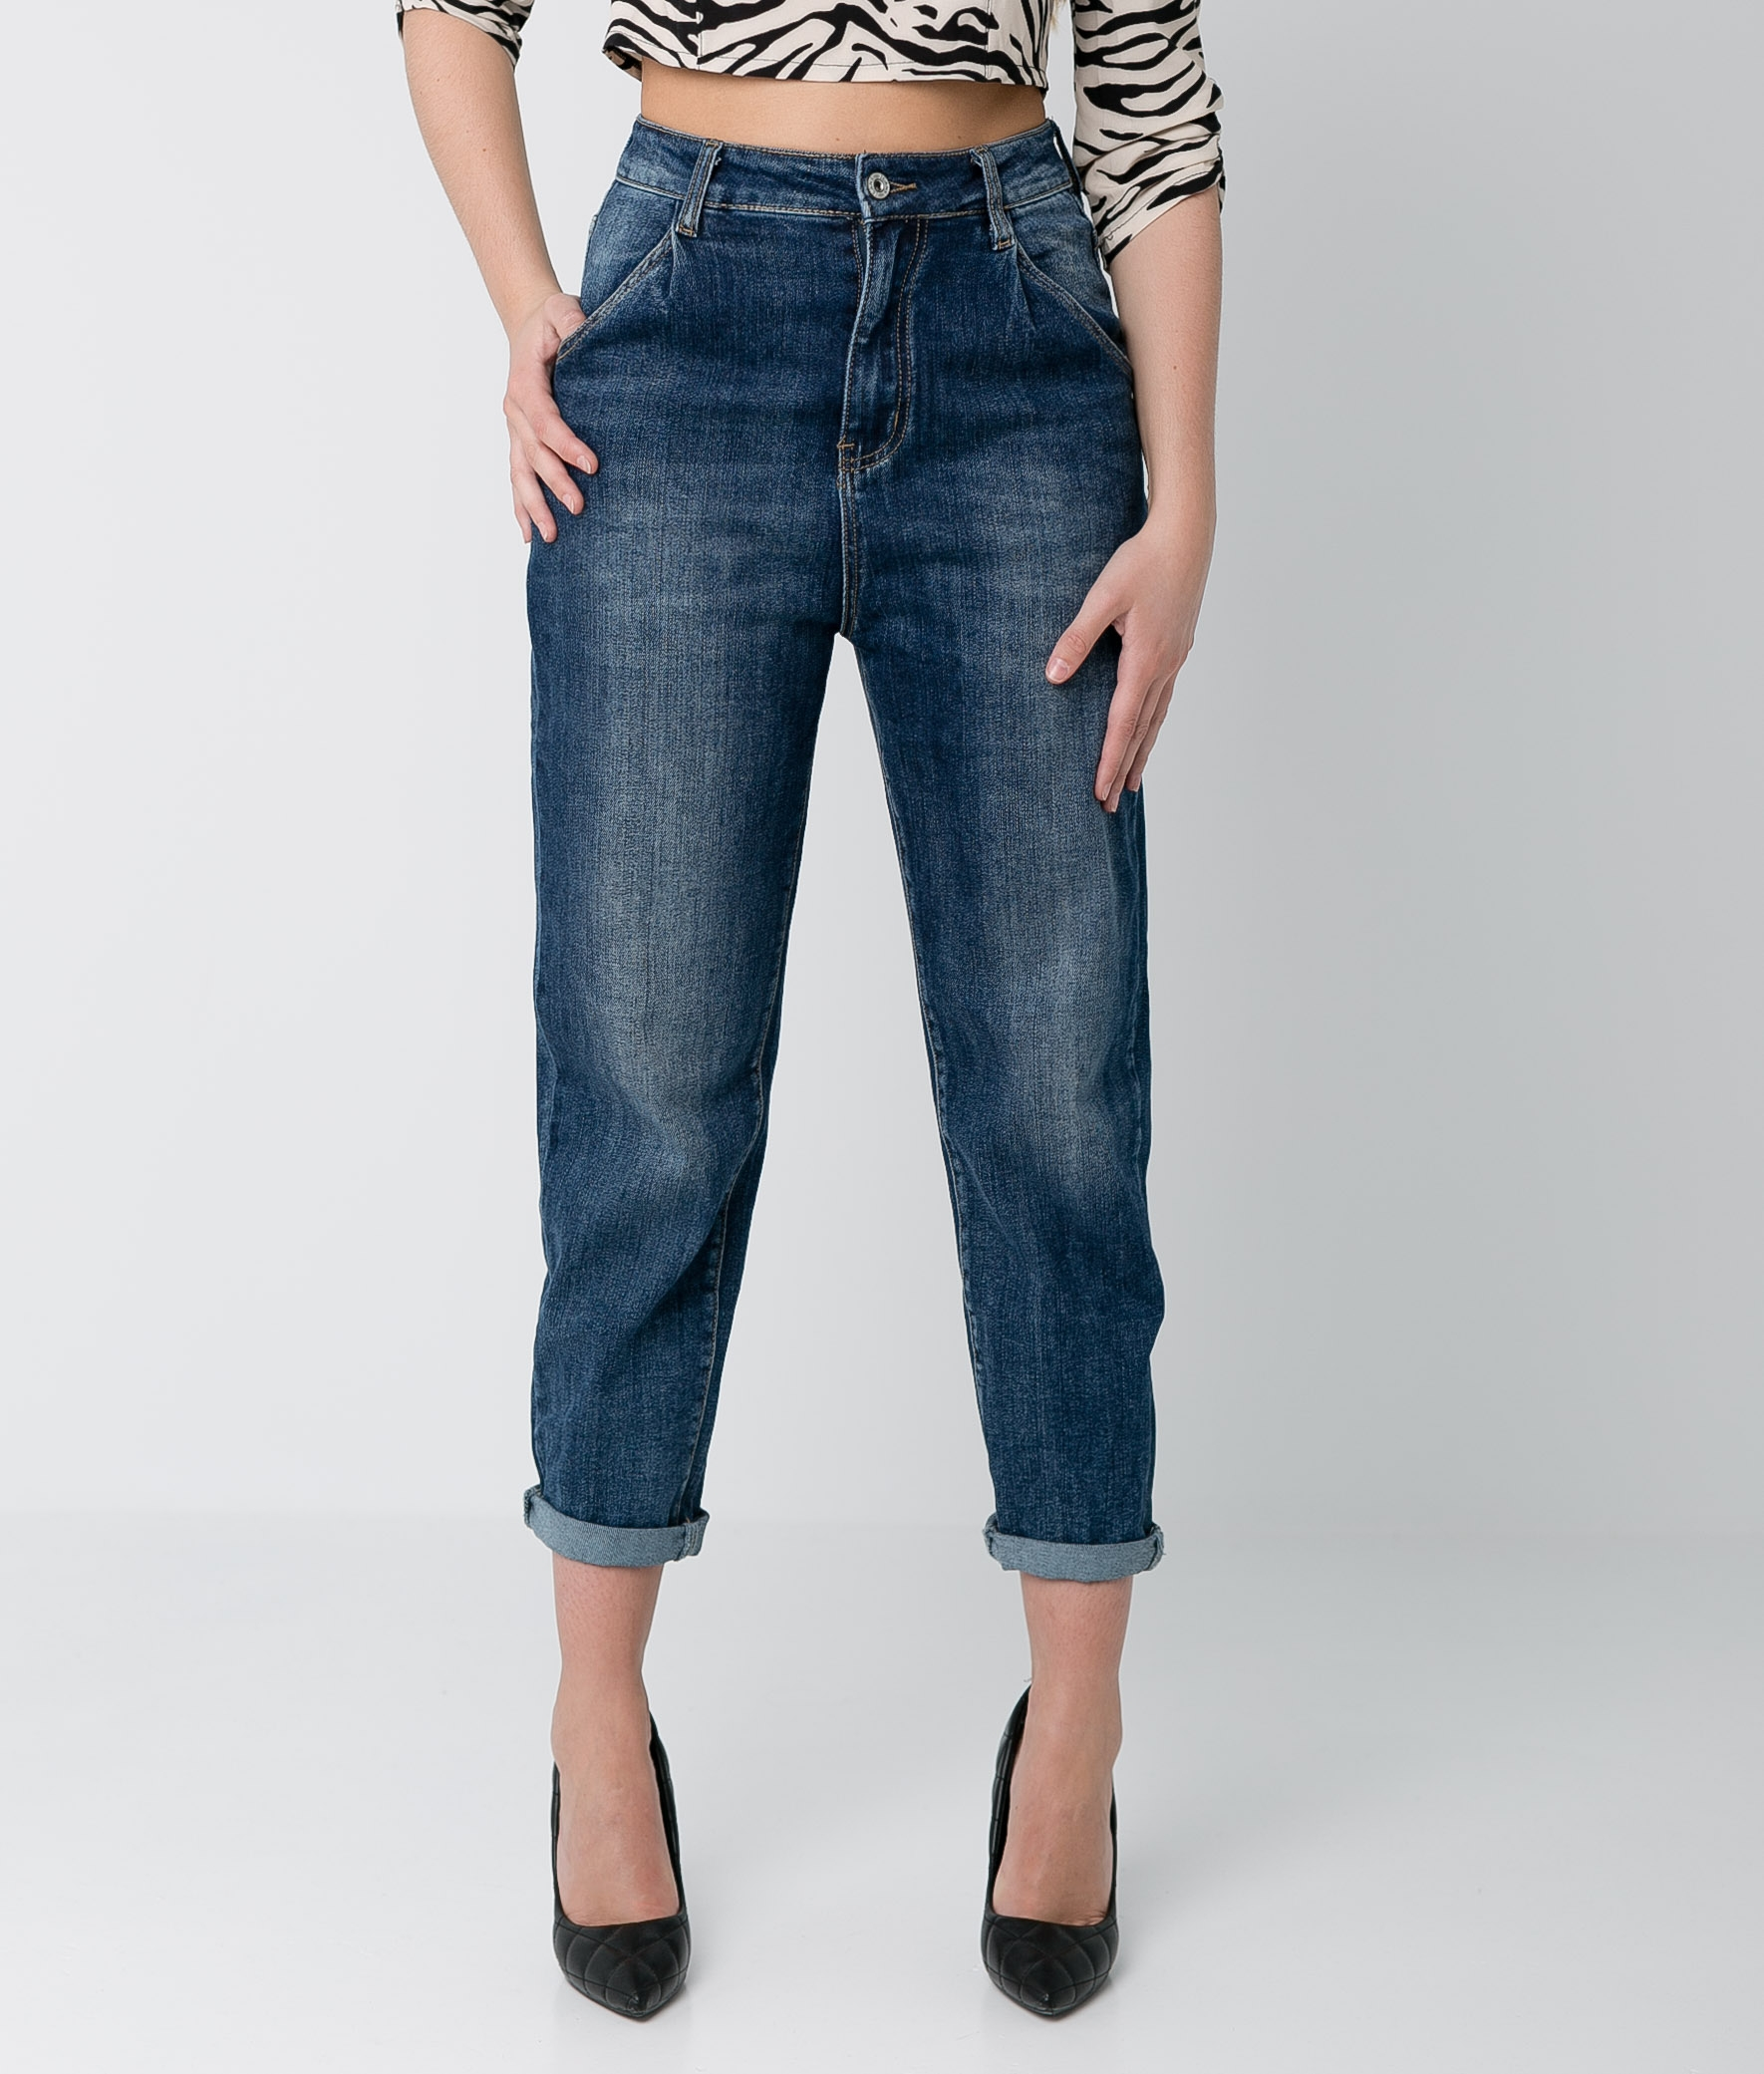 Pantalon Klin - Denim